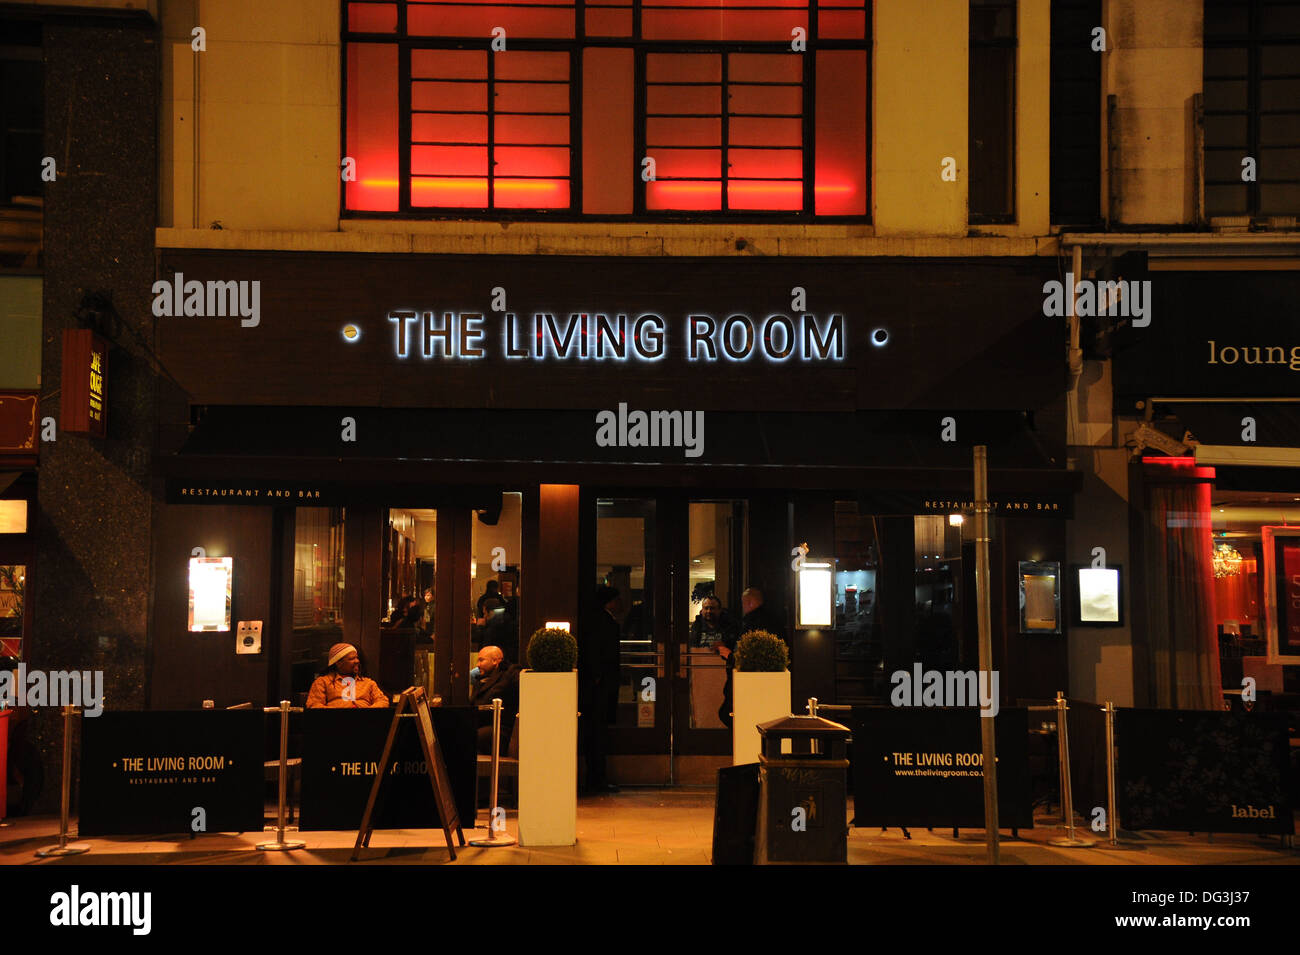 Living Room Restaurant and Bar at night Manchester UK